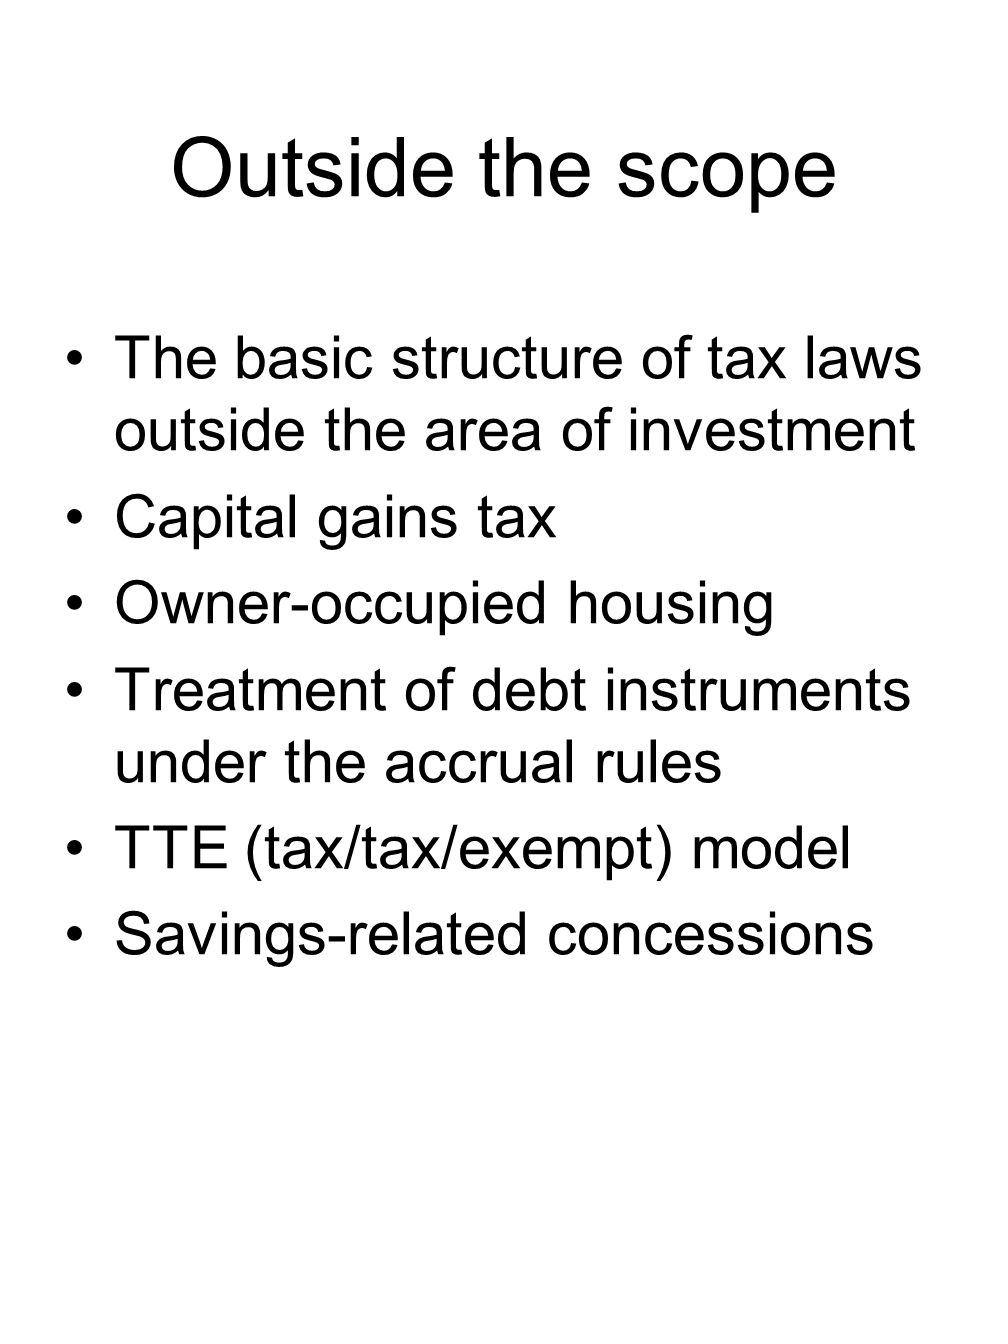 Outside the scope The basic structure of tax laws outside the area of investment Capital gains tax Owner-occupied housing Treatment of debt instruments under the accrual rules TTE (tax/tax/exempt) model Savings-related concessions